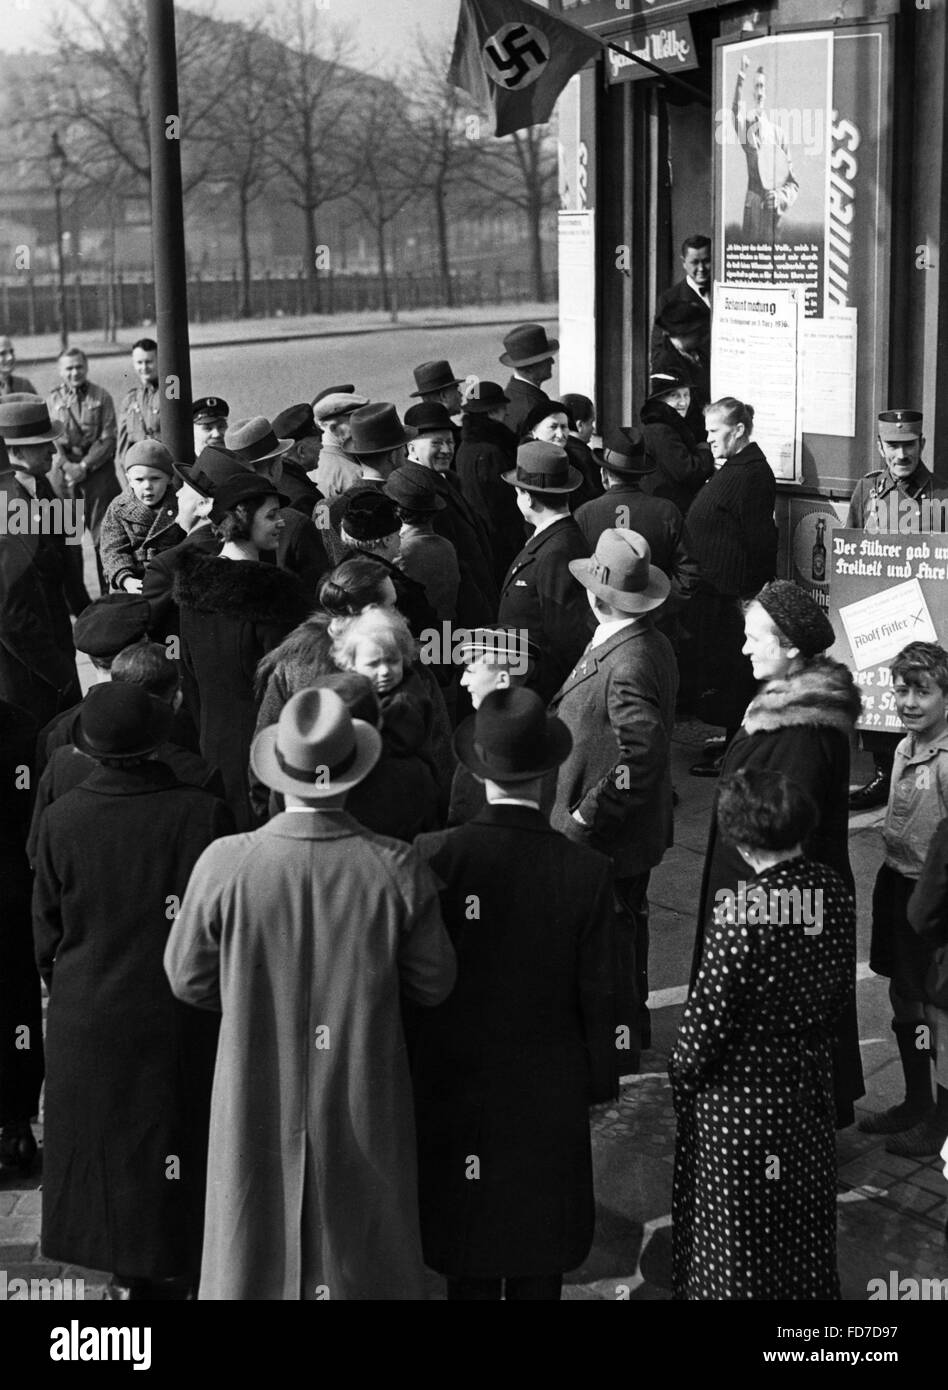 Polling station in Berlin for the Reichstag elections 1936 - Stock Image